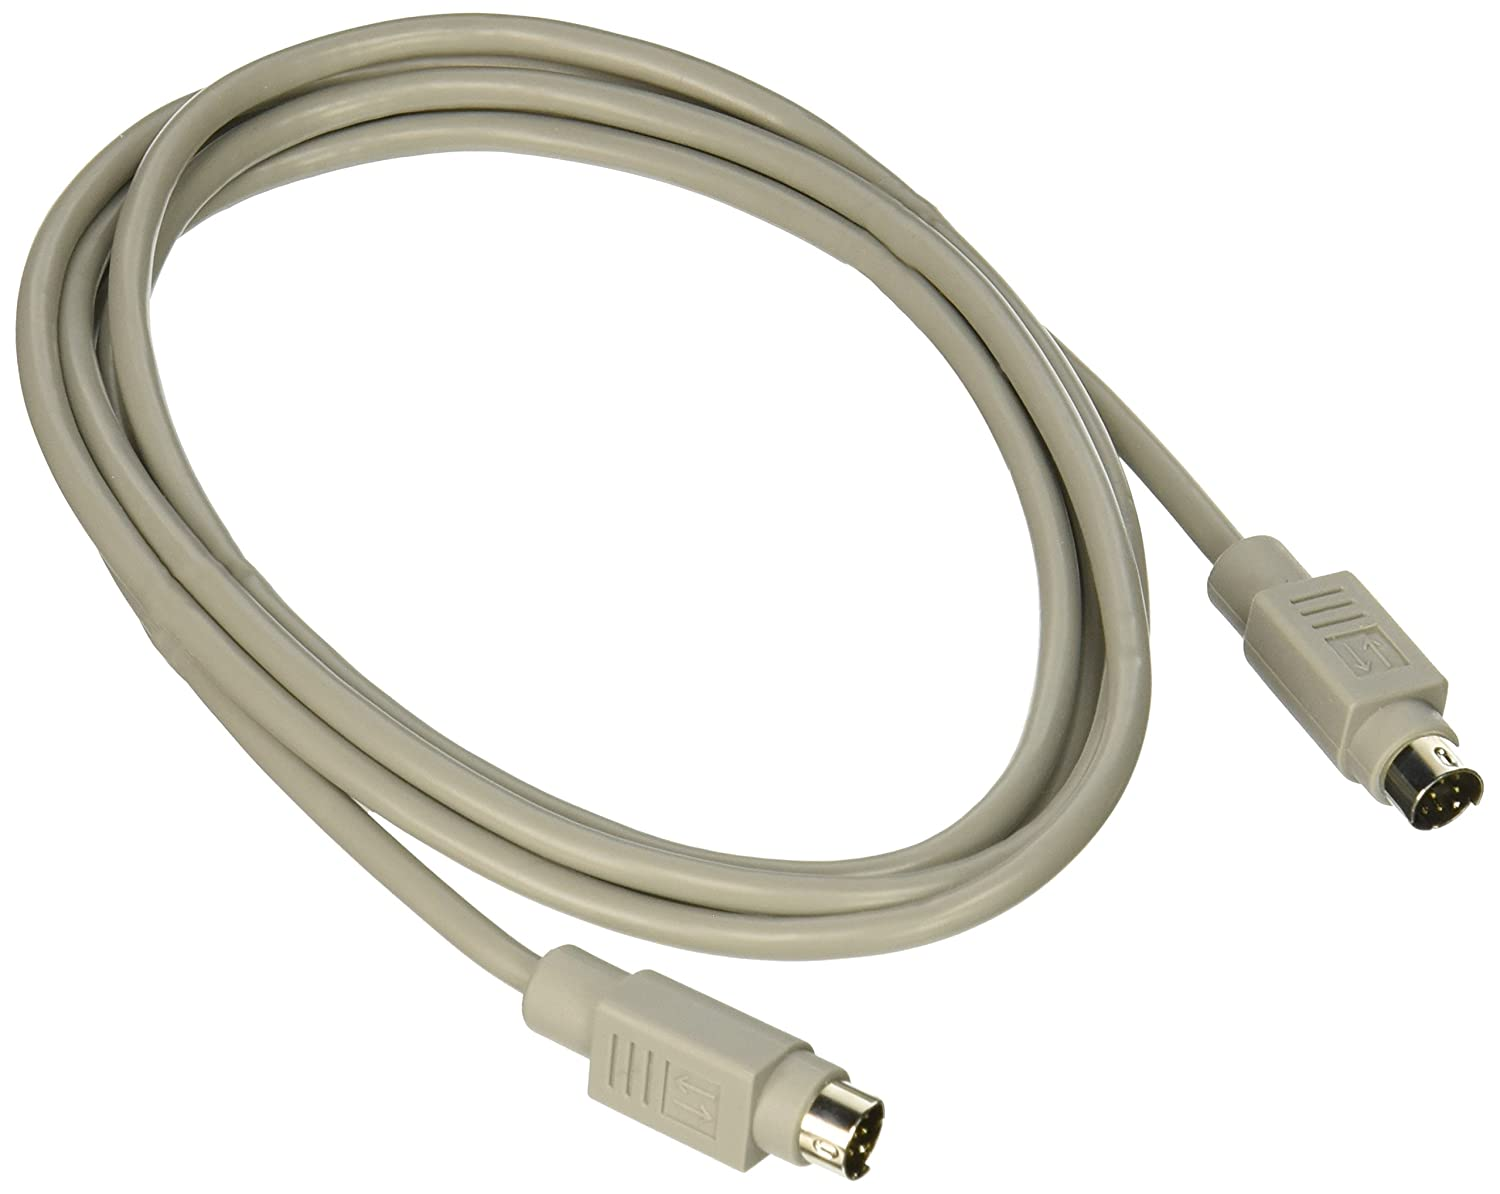 Beige C2G//Cables To Go C2G 02316 8-Pin Mini-DIN M//M Serial RS232 Cable 6 Feet, 1.82 Meters Black